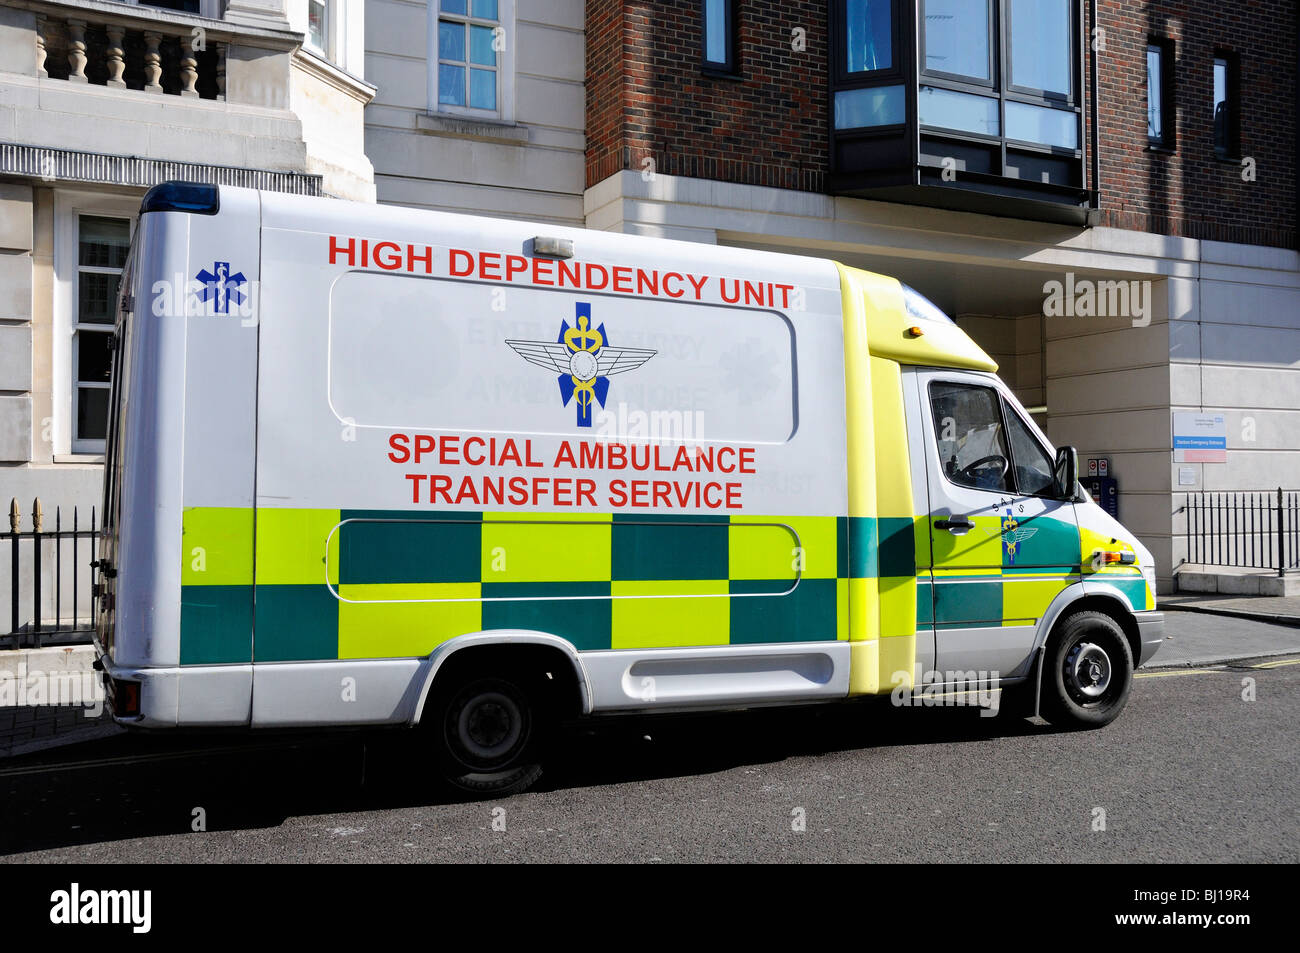 High Dependency Unit Special Ambulance Transfer Service outside The Heart Hospital Marylebone Central London UK - Stock Image